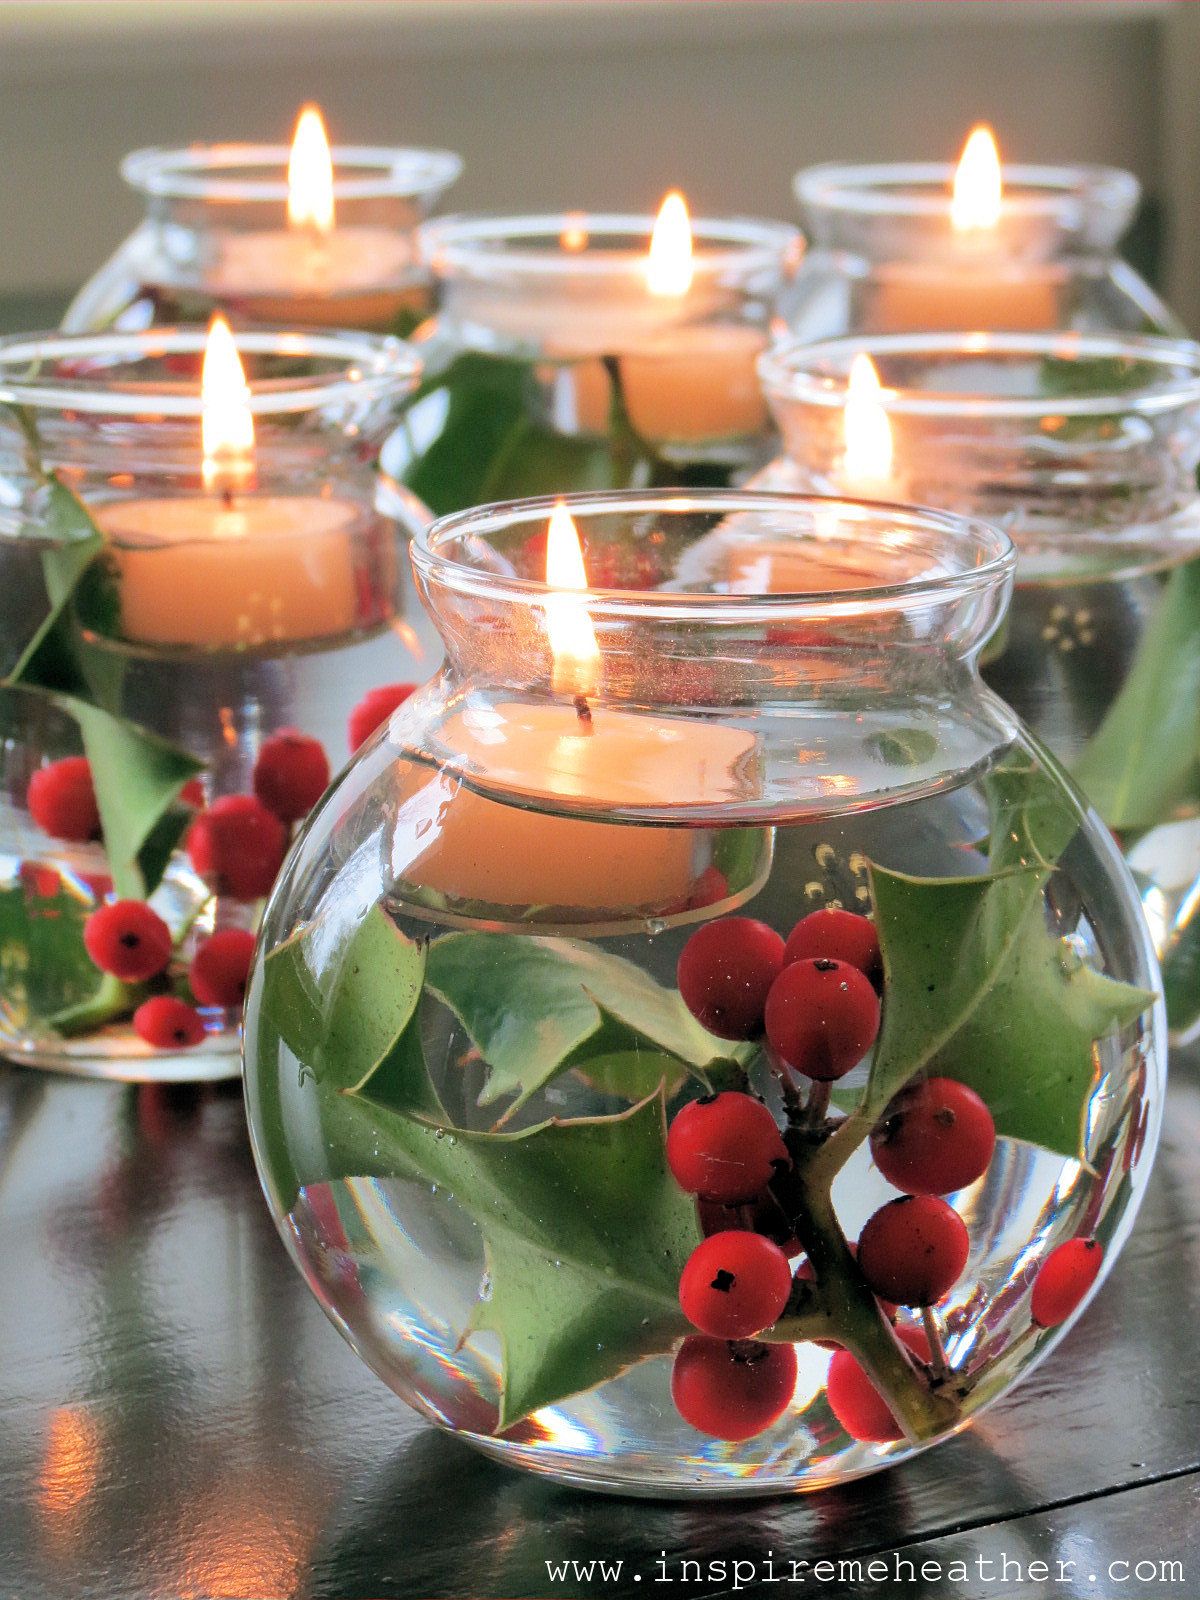 Best ideas about Christmas Centerpiece DIY . Save or Pin 17 Easy Last Minute DIY Christmas Decorations Style Now.